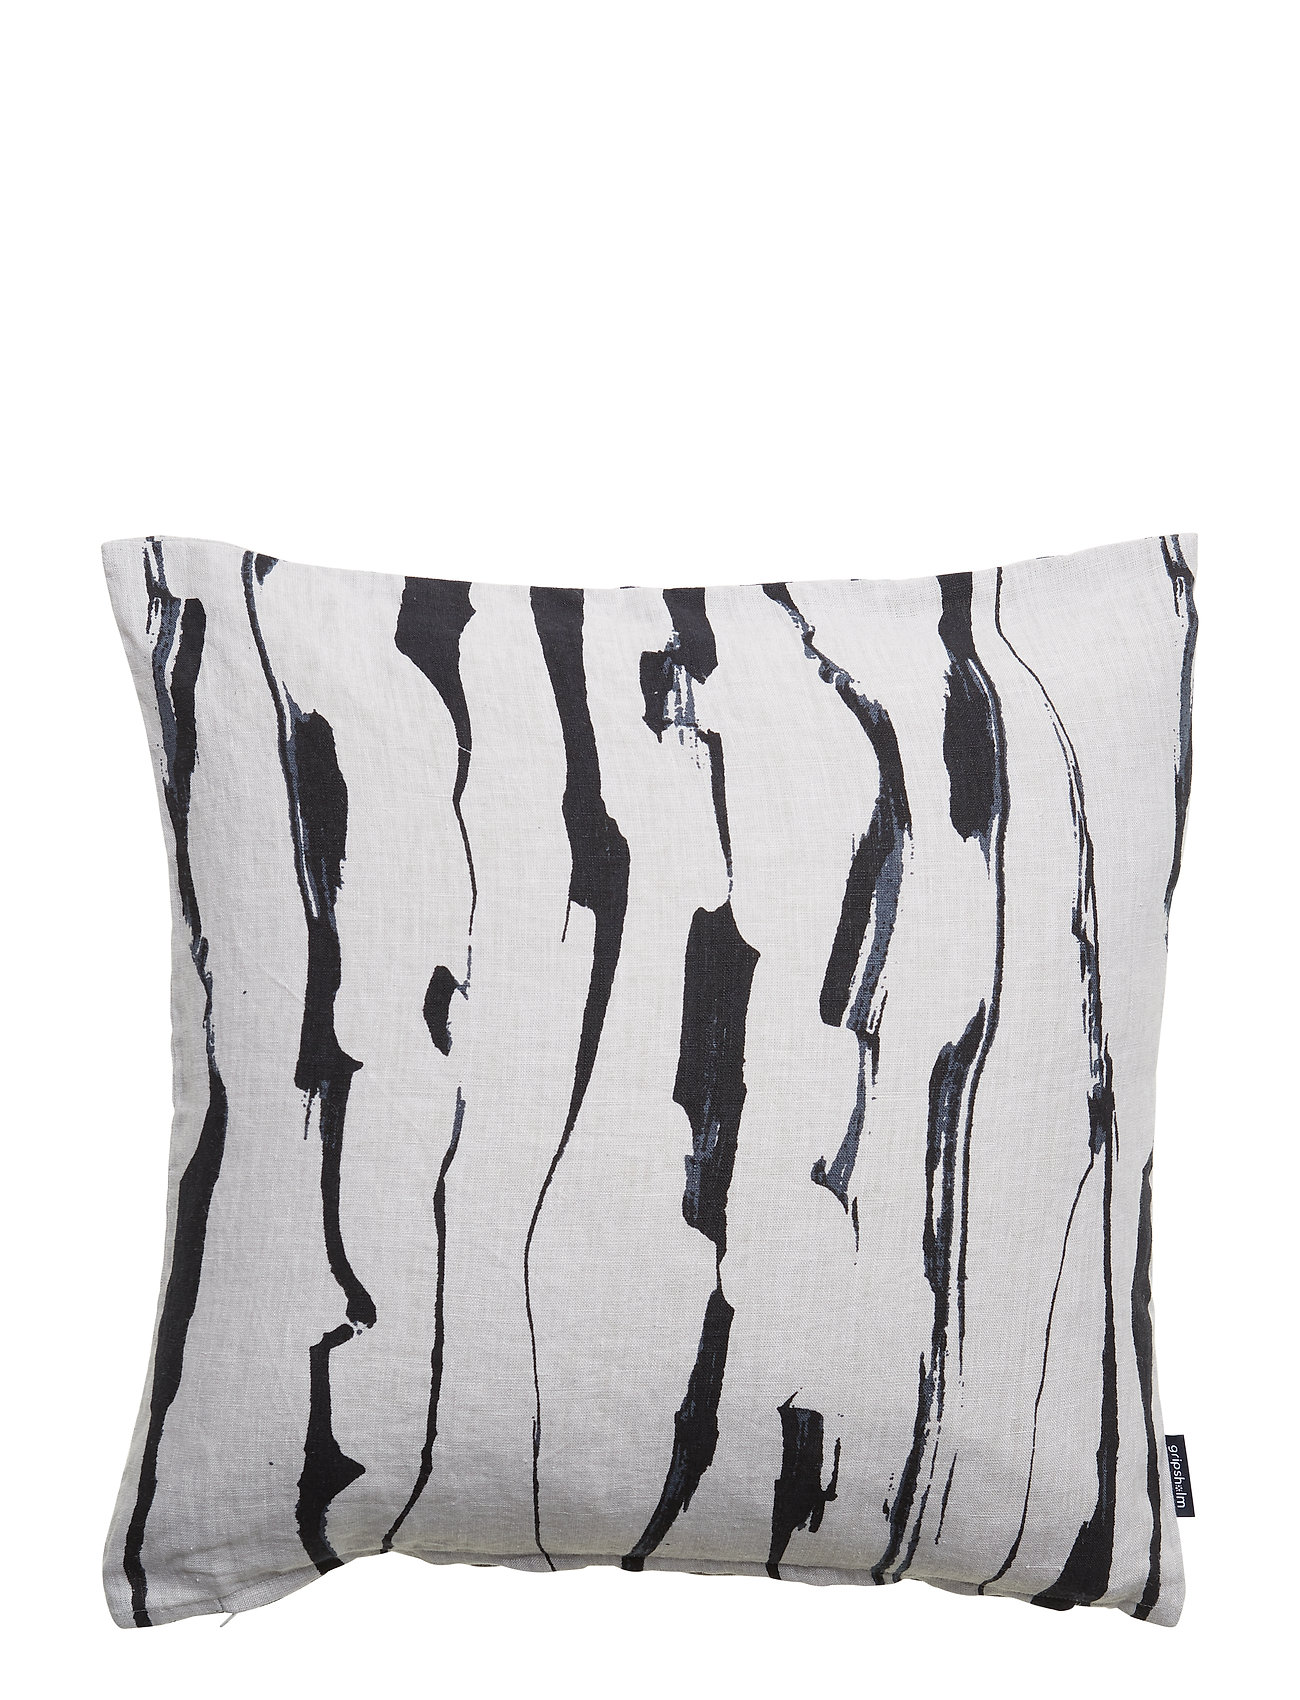 Gripsholm CUSHION COVER GABRIEL - LUNAR ROCK